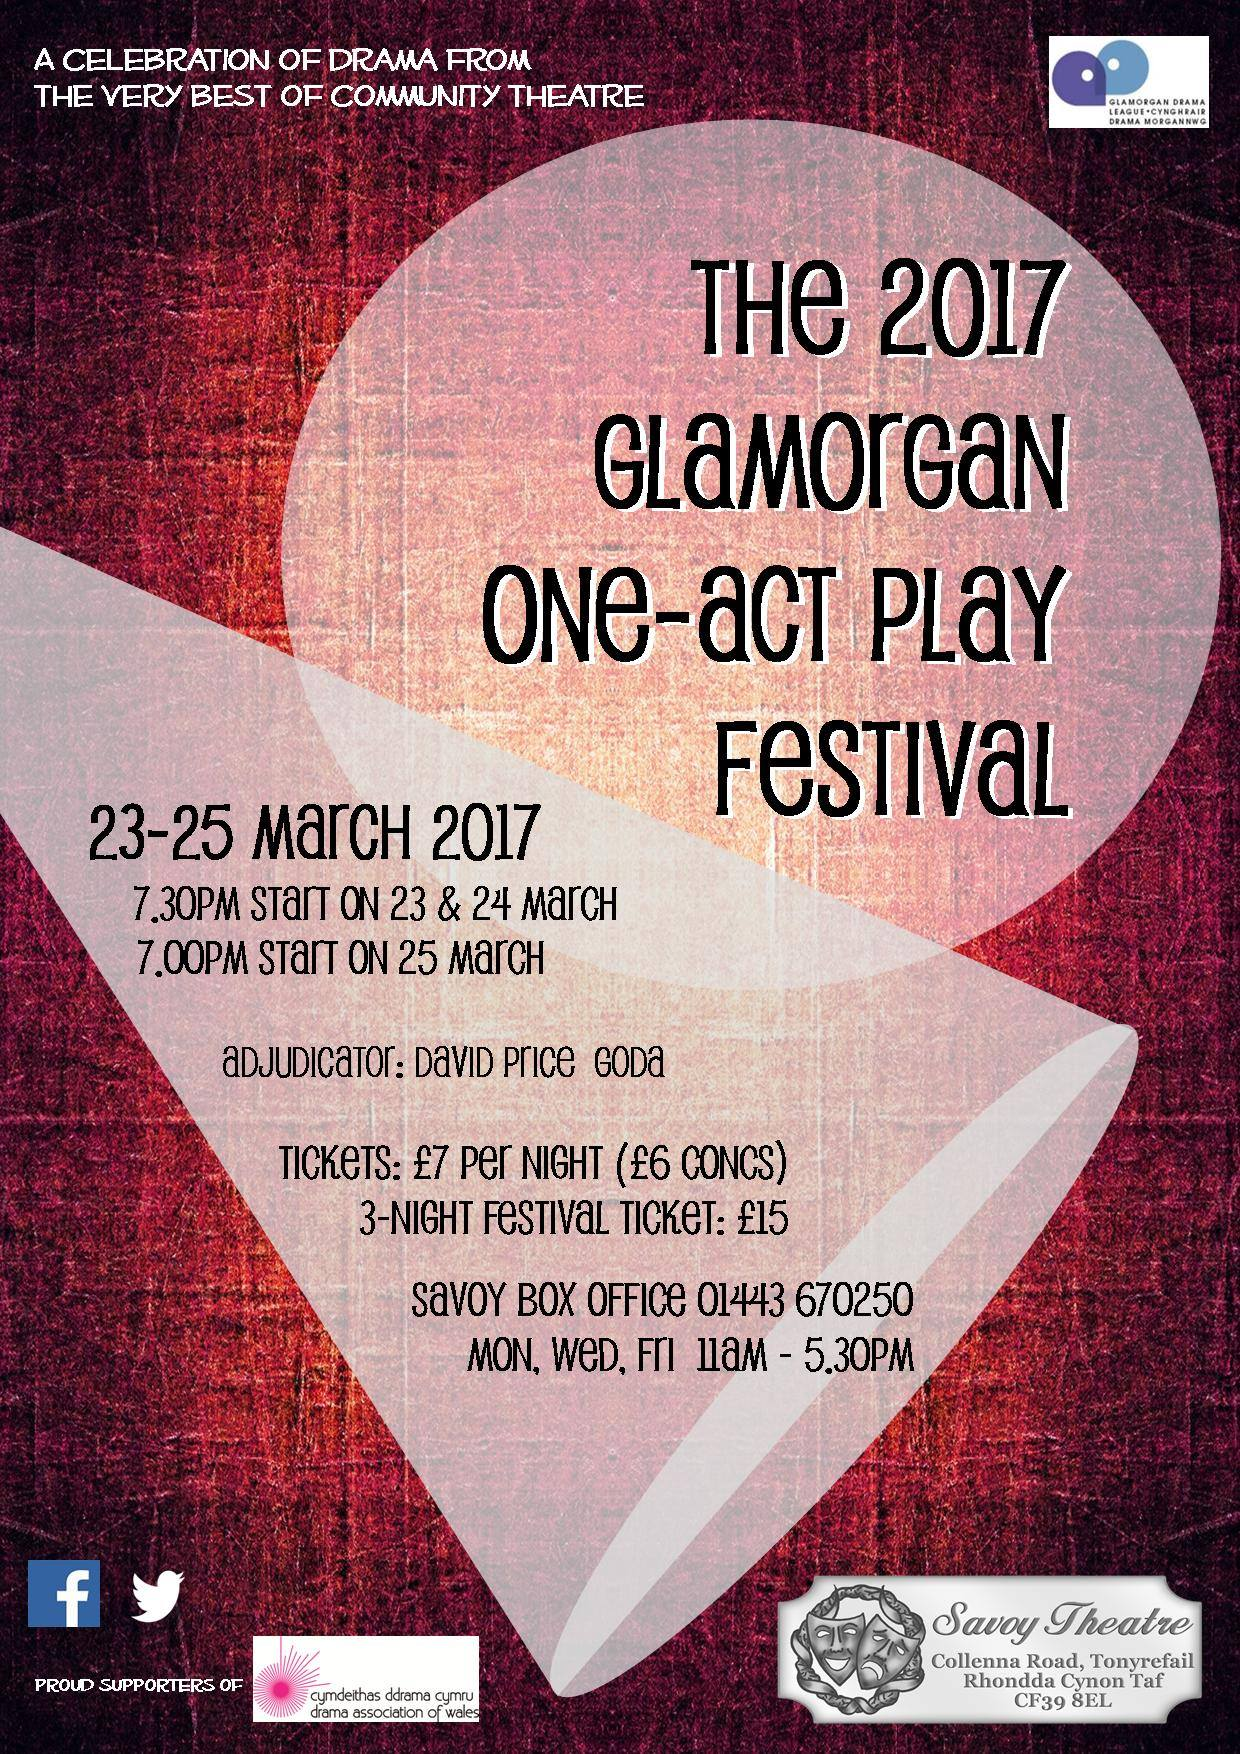 The 2017 Glamorgan One-Act Play Festival